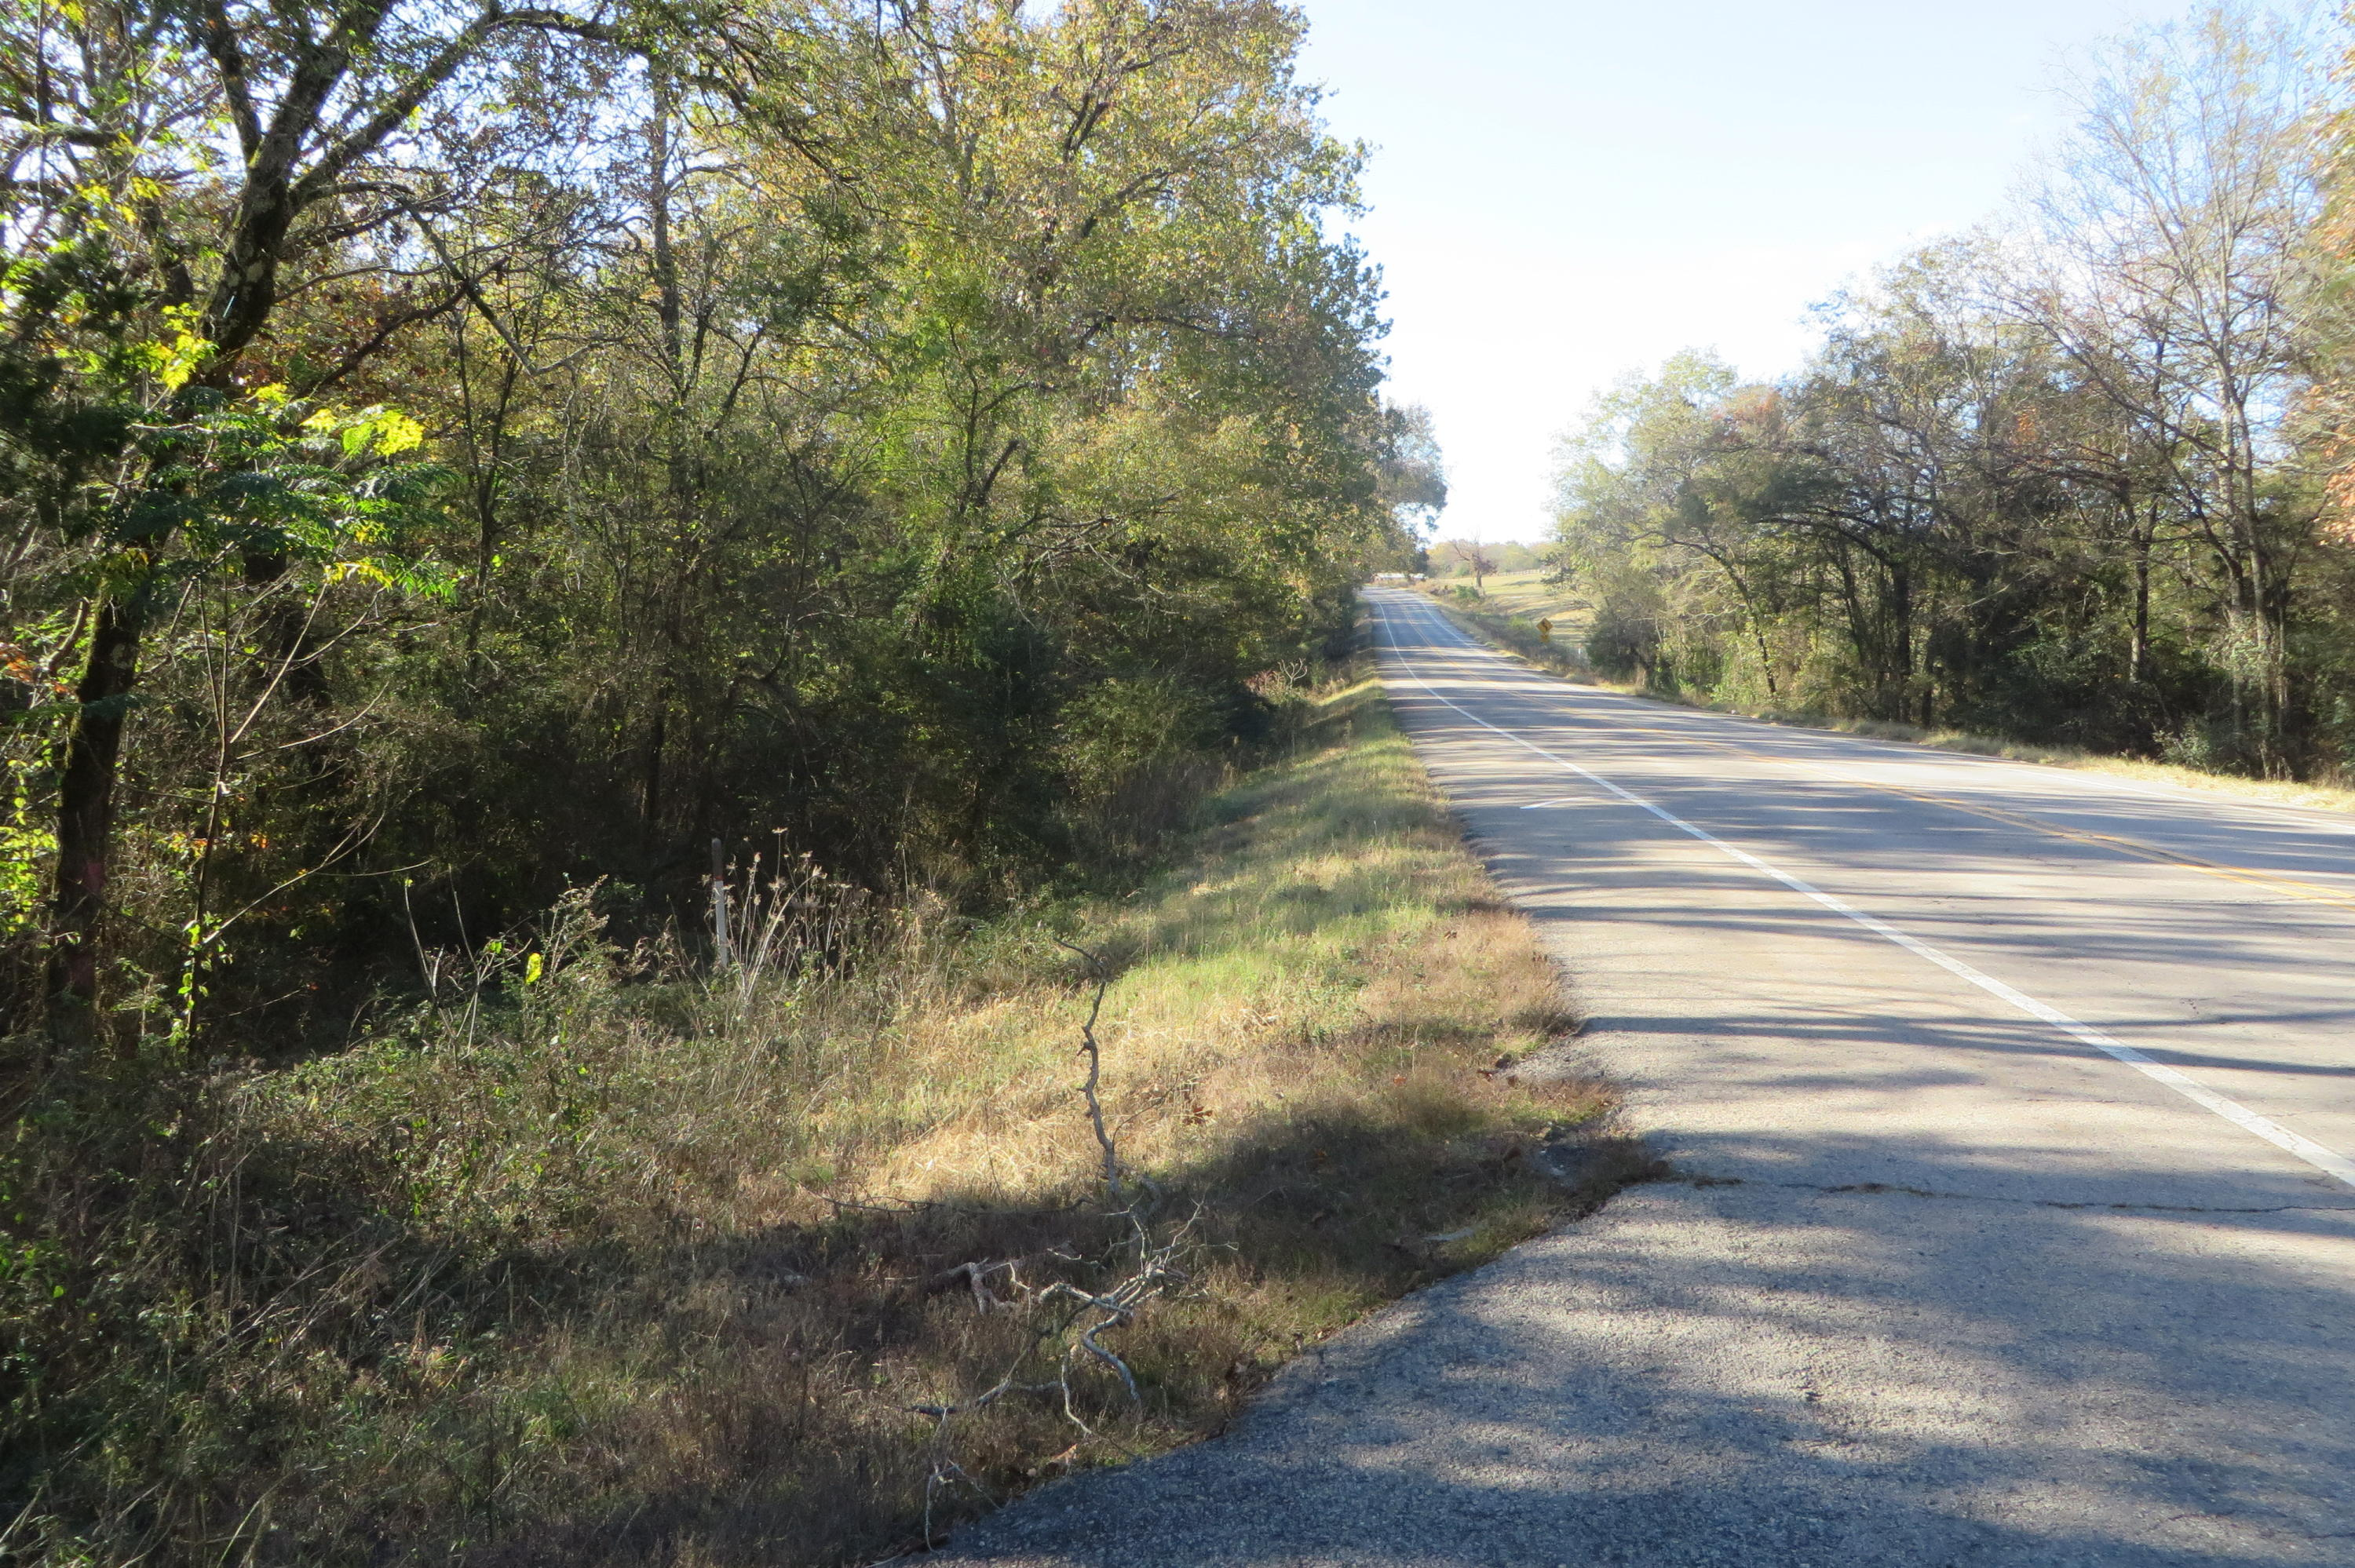 Large photo 33 of land for sale at  Highway 64 , London, AR, listed by Moore And Co.